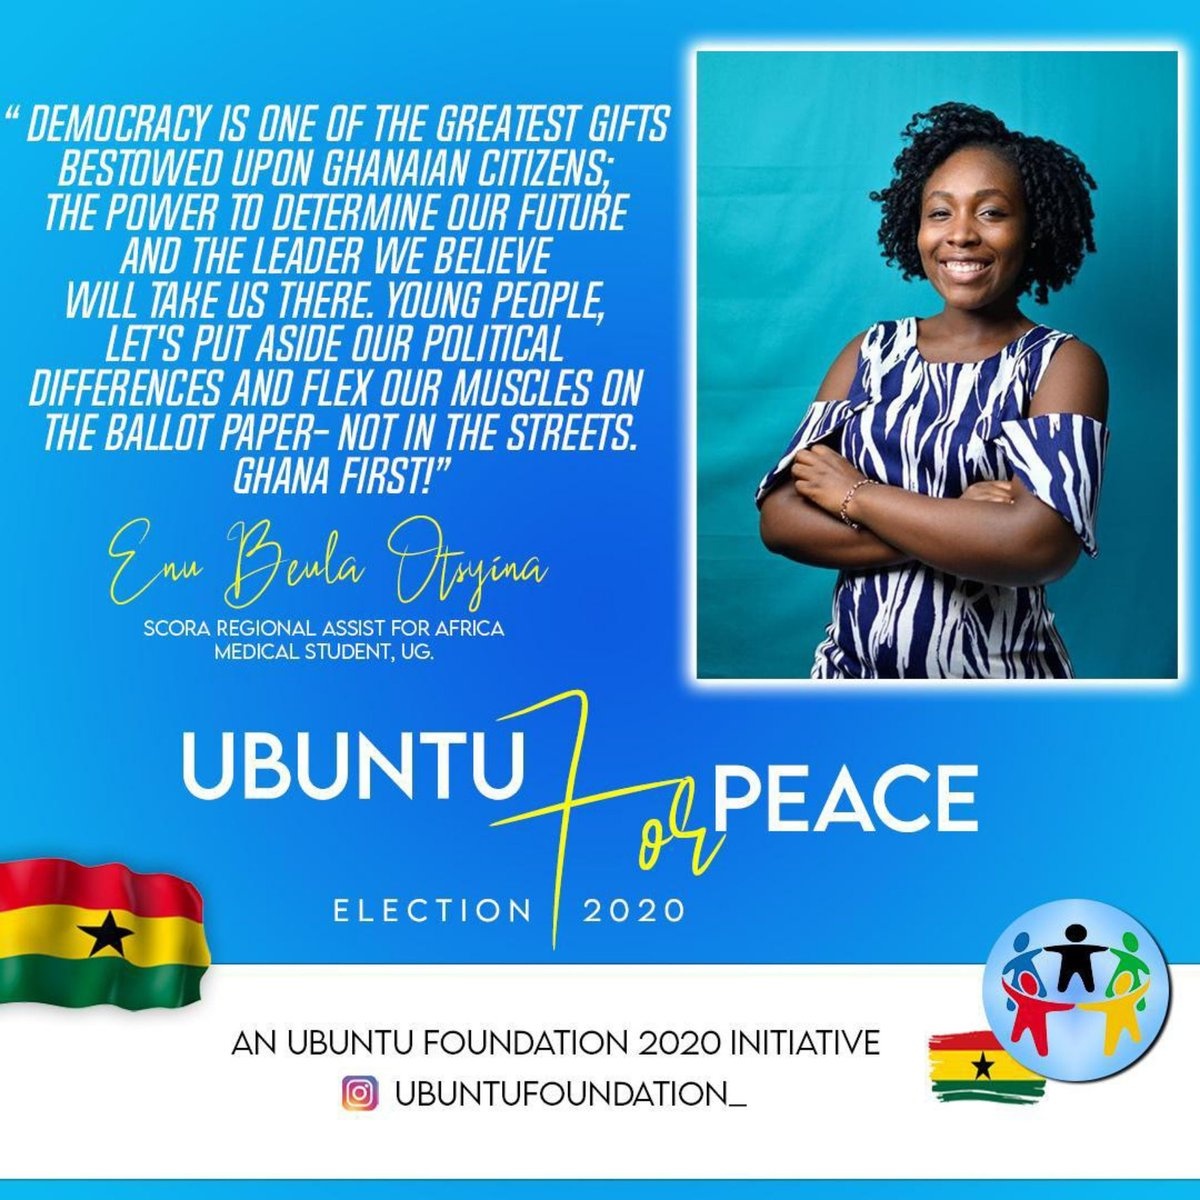 """Enu Beula Otsyina, @BeulaEnu (SCORA Regional Assistant for Africa) joins the @ubuntufoundation_ peace campaign to promote peaceful elections.☮️  As young people, we must channel our political efforts into """"flexing our muscles on the ballot"""" and not in the streets.  Ghana First!🇬🇭"""